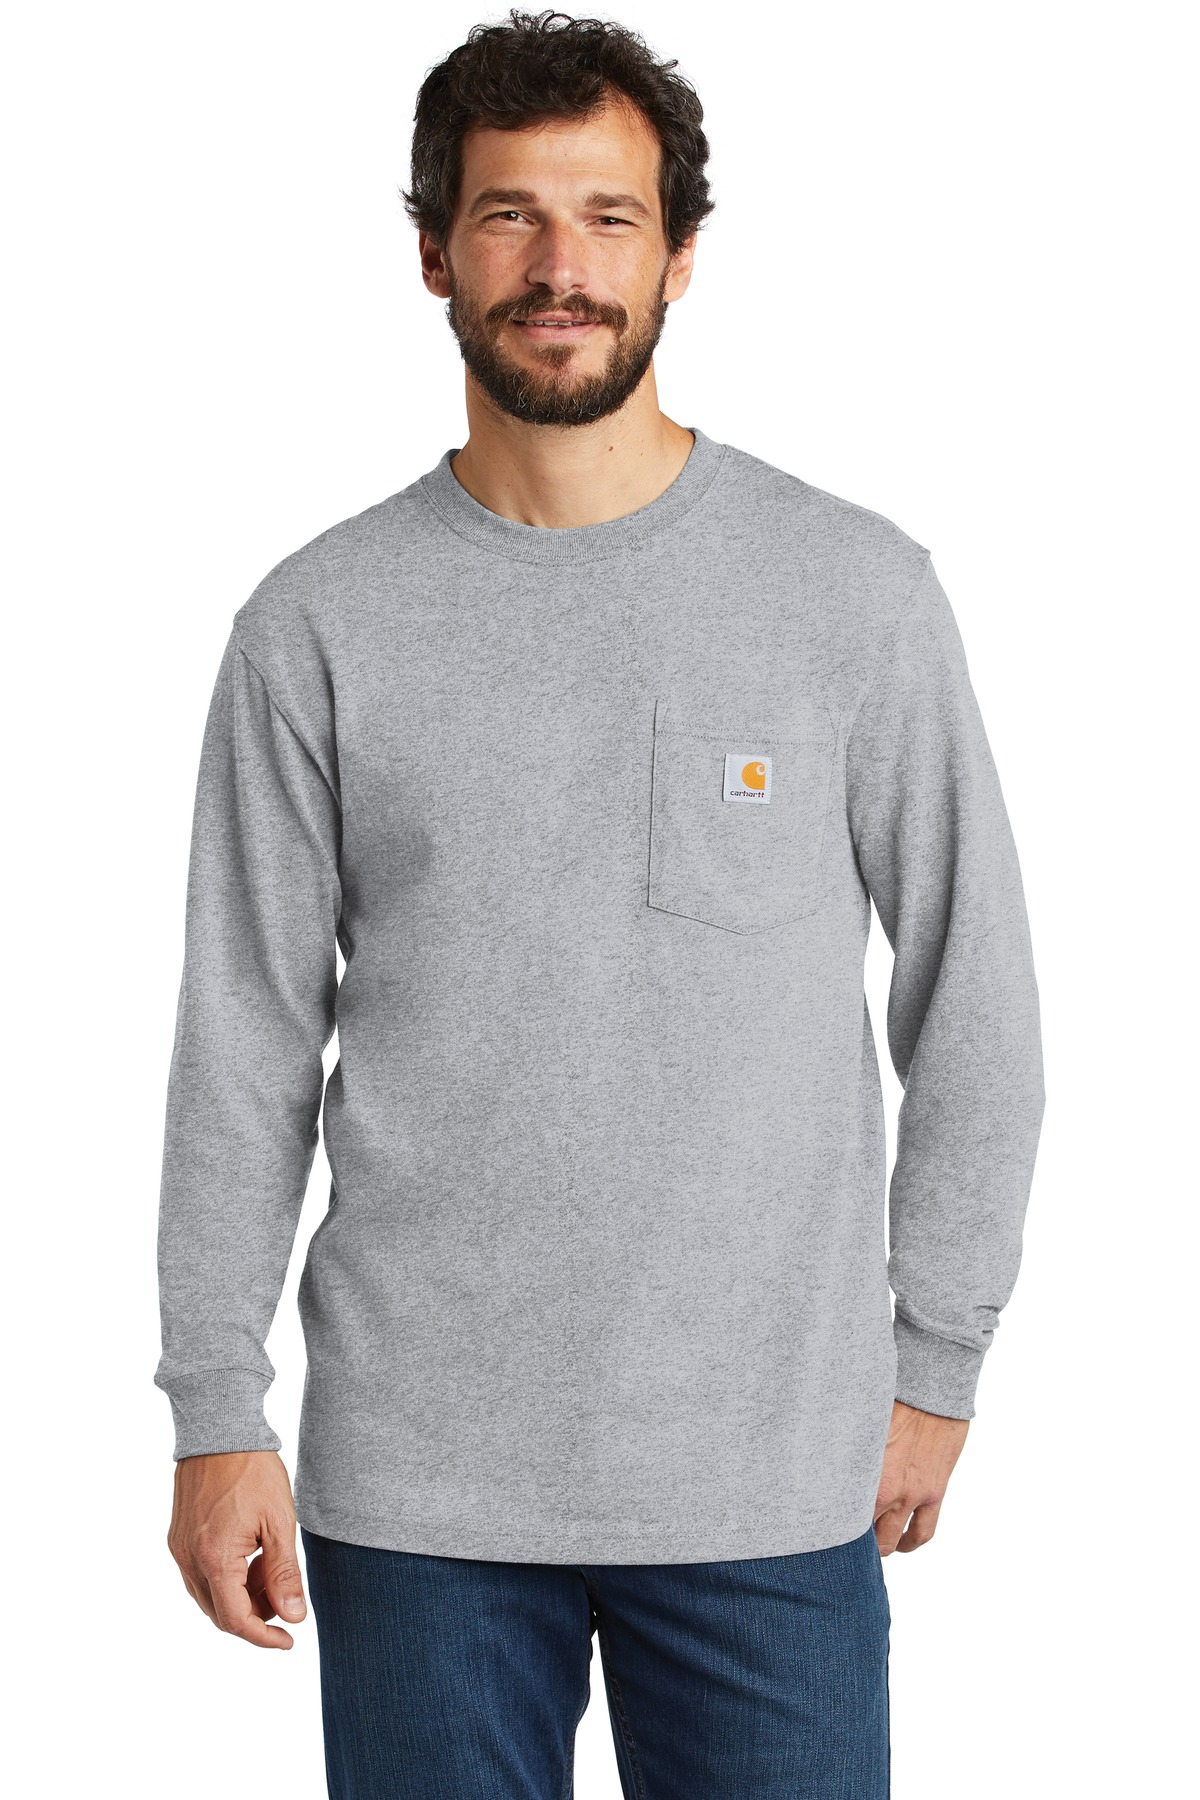 Carhartt  ®  Workwear Pocket Long Sleeve T-Shirt. CTK126 - Heather Grey